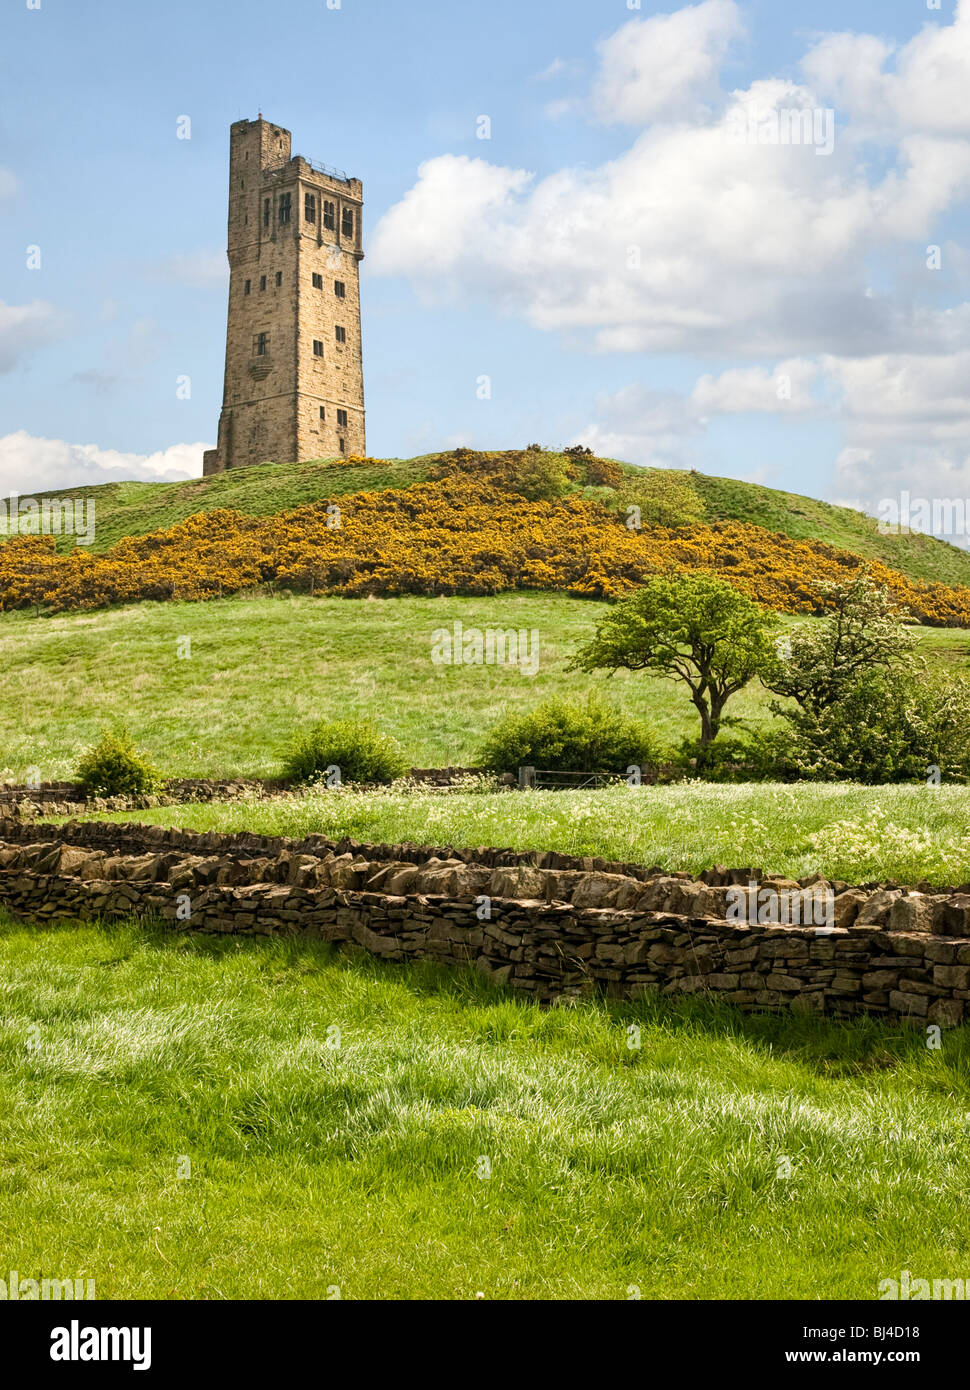 The Victoria Jubilee Tower, Castle Hill, Huddersfield, West Yorkshire, UK - Stock Image